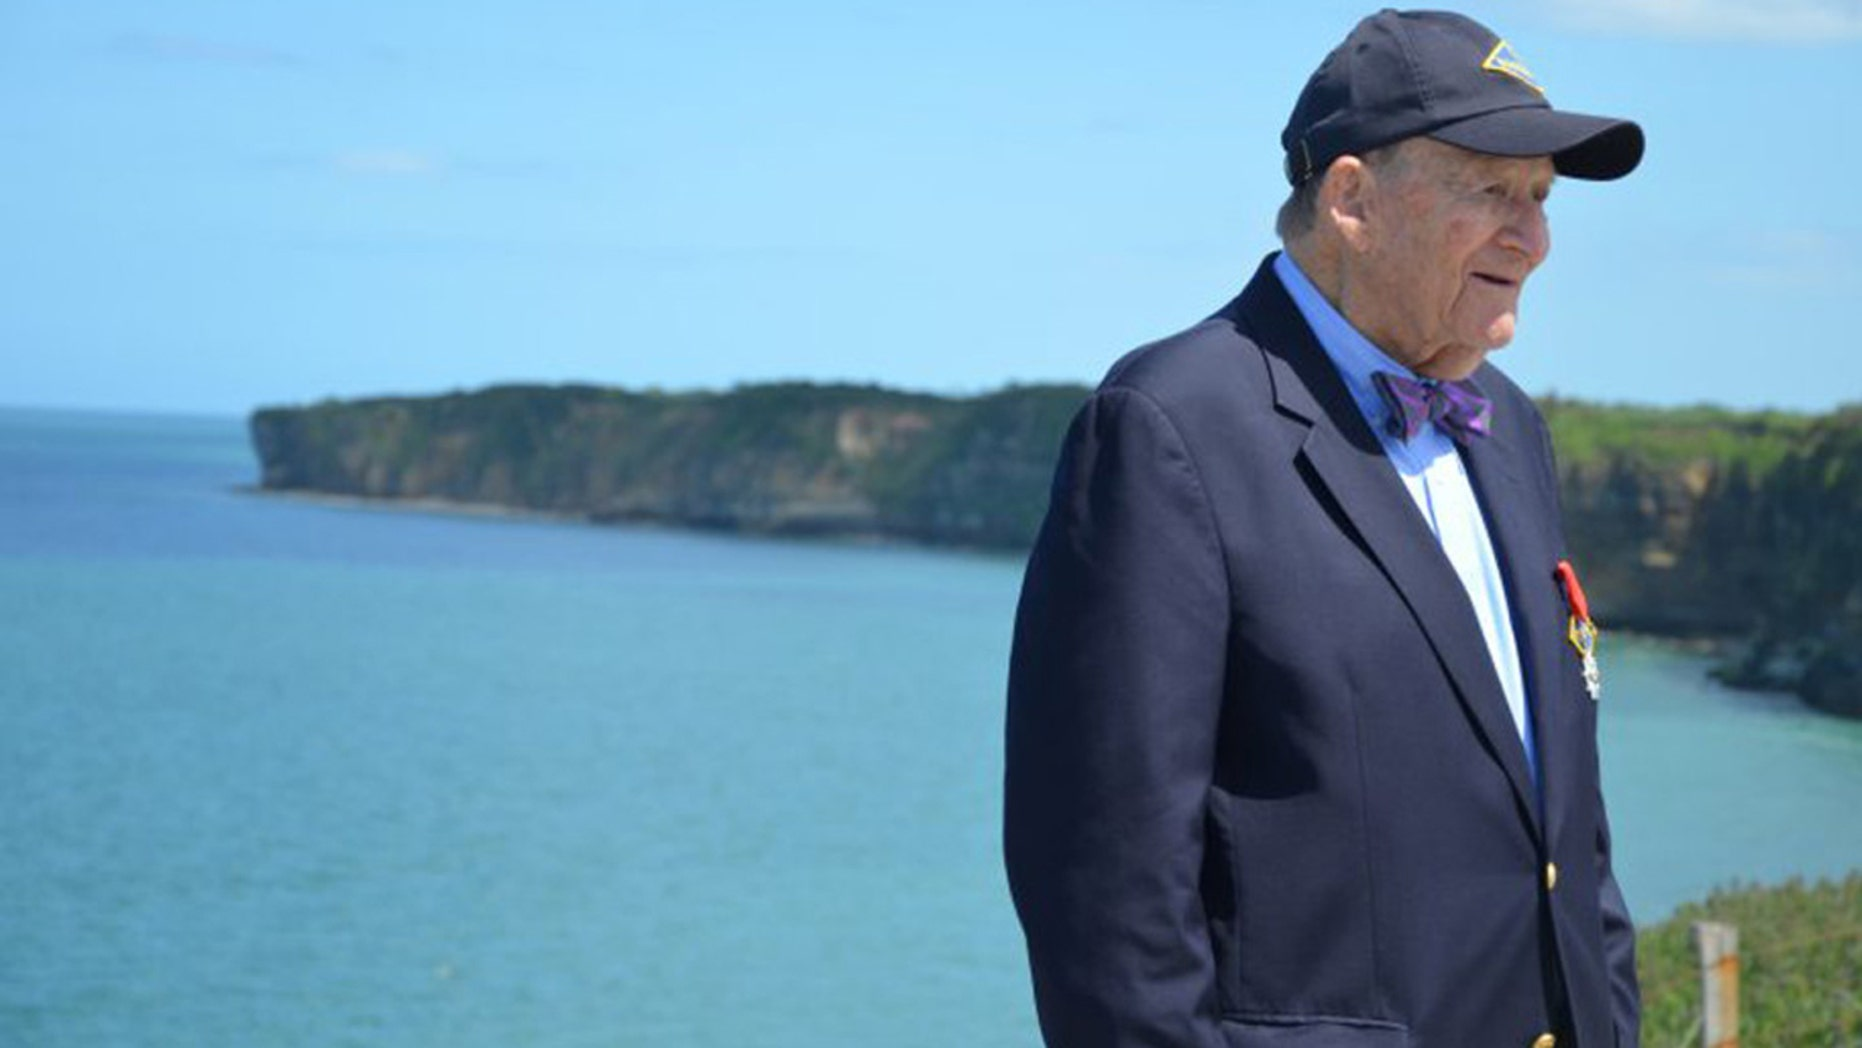 George Klein appears at a 2015 ceremony commemorating the landing of U.S. Army Rangers at Pointe du Hoc